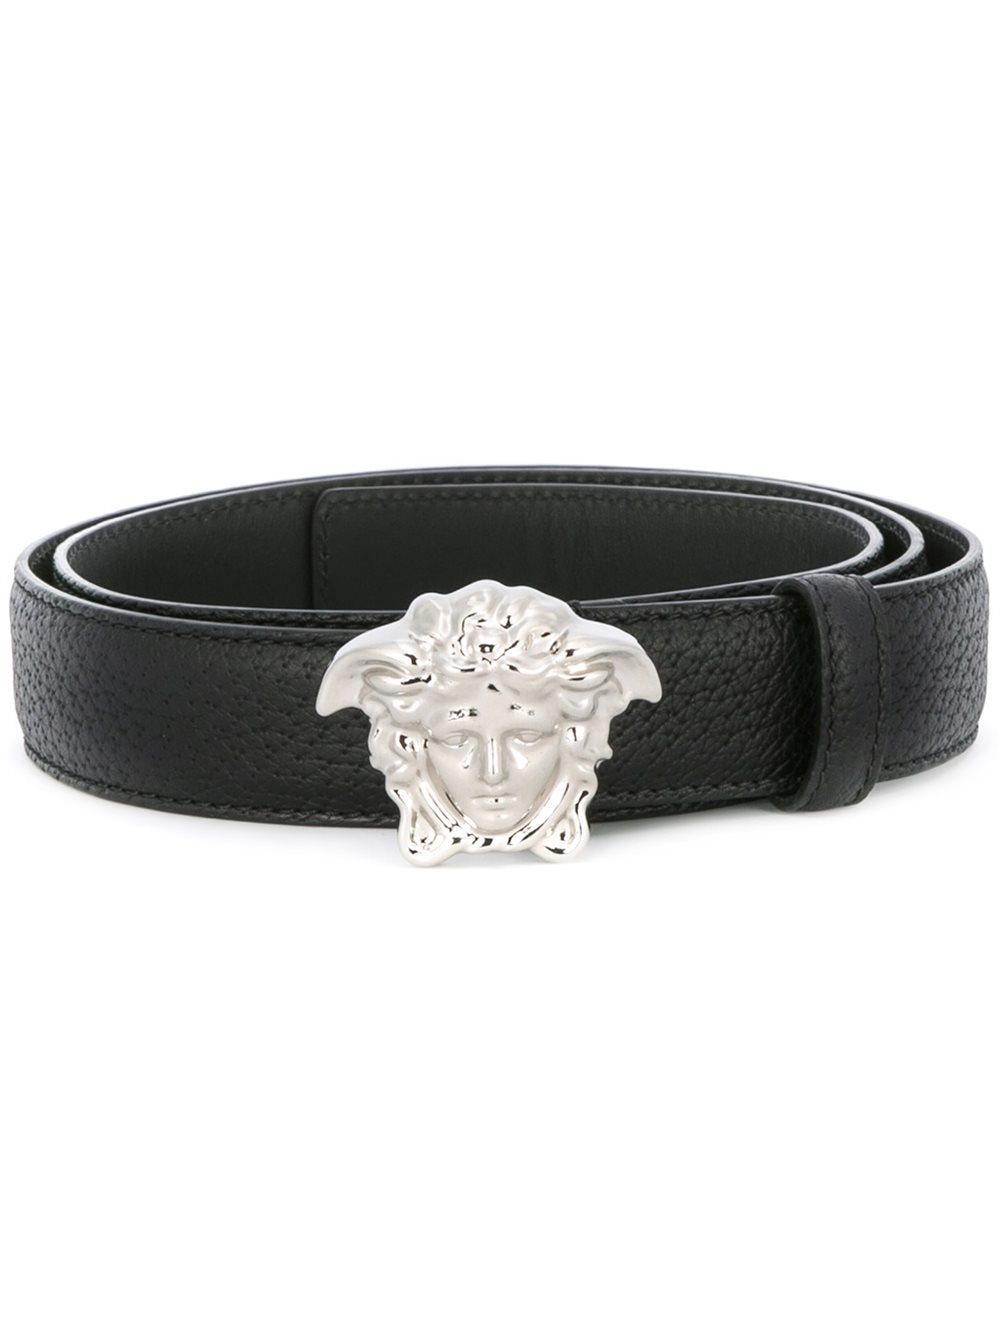 versace medusa winger belt in black for men lyst. Black Bedroom Furniture Sets. Home Design Ideas